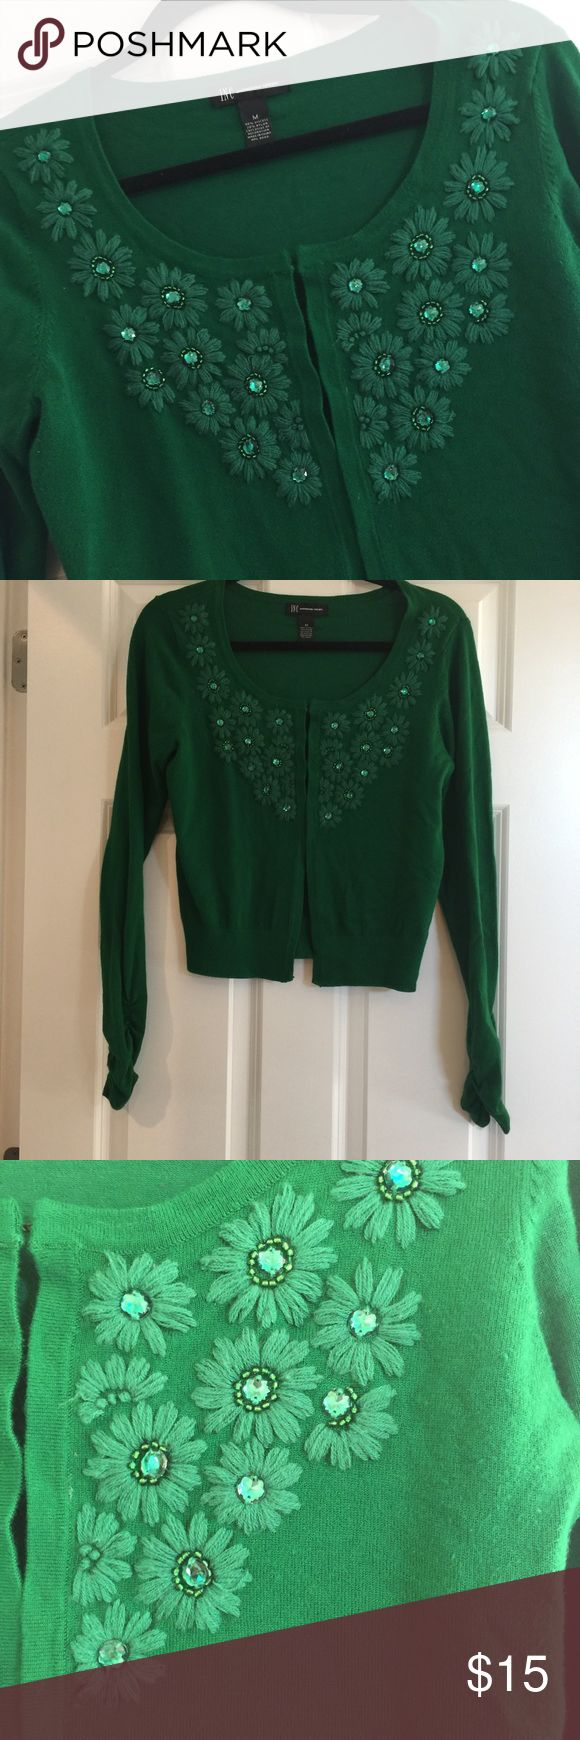 Macy's INC Green Sweater with Flowers long sleeve Super soft and in good condition. Have hook and eyes not buttons or snaps. Details shown in photos. Slimmer fit. No trades. Smoke free home. INC International Concepts Sweaters Cardigans